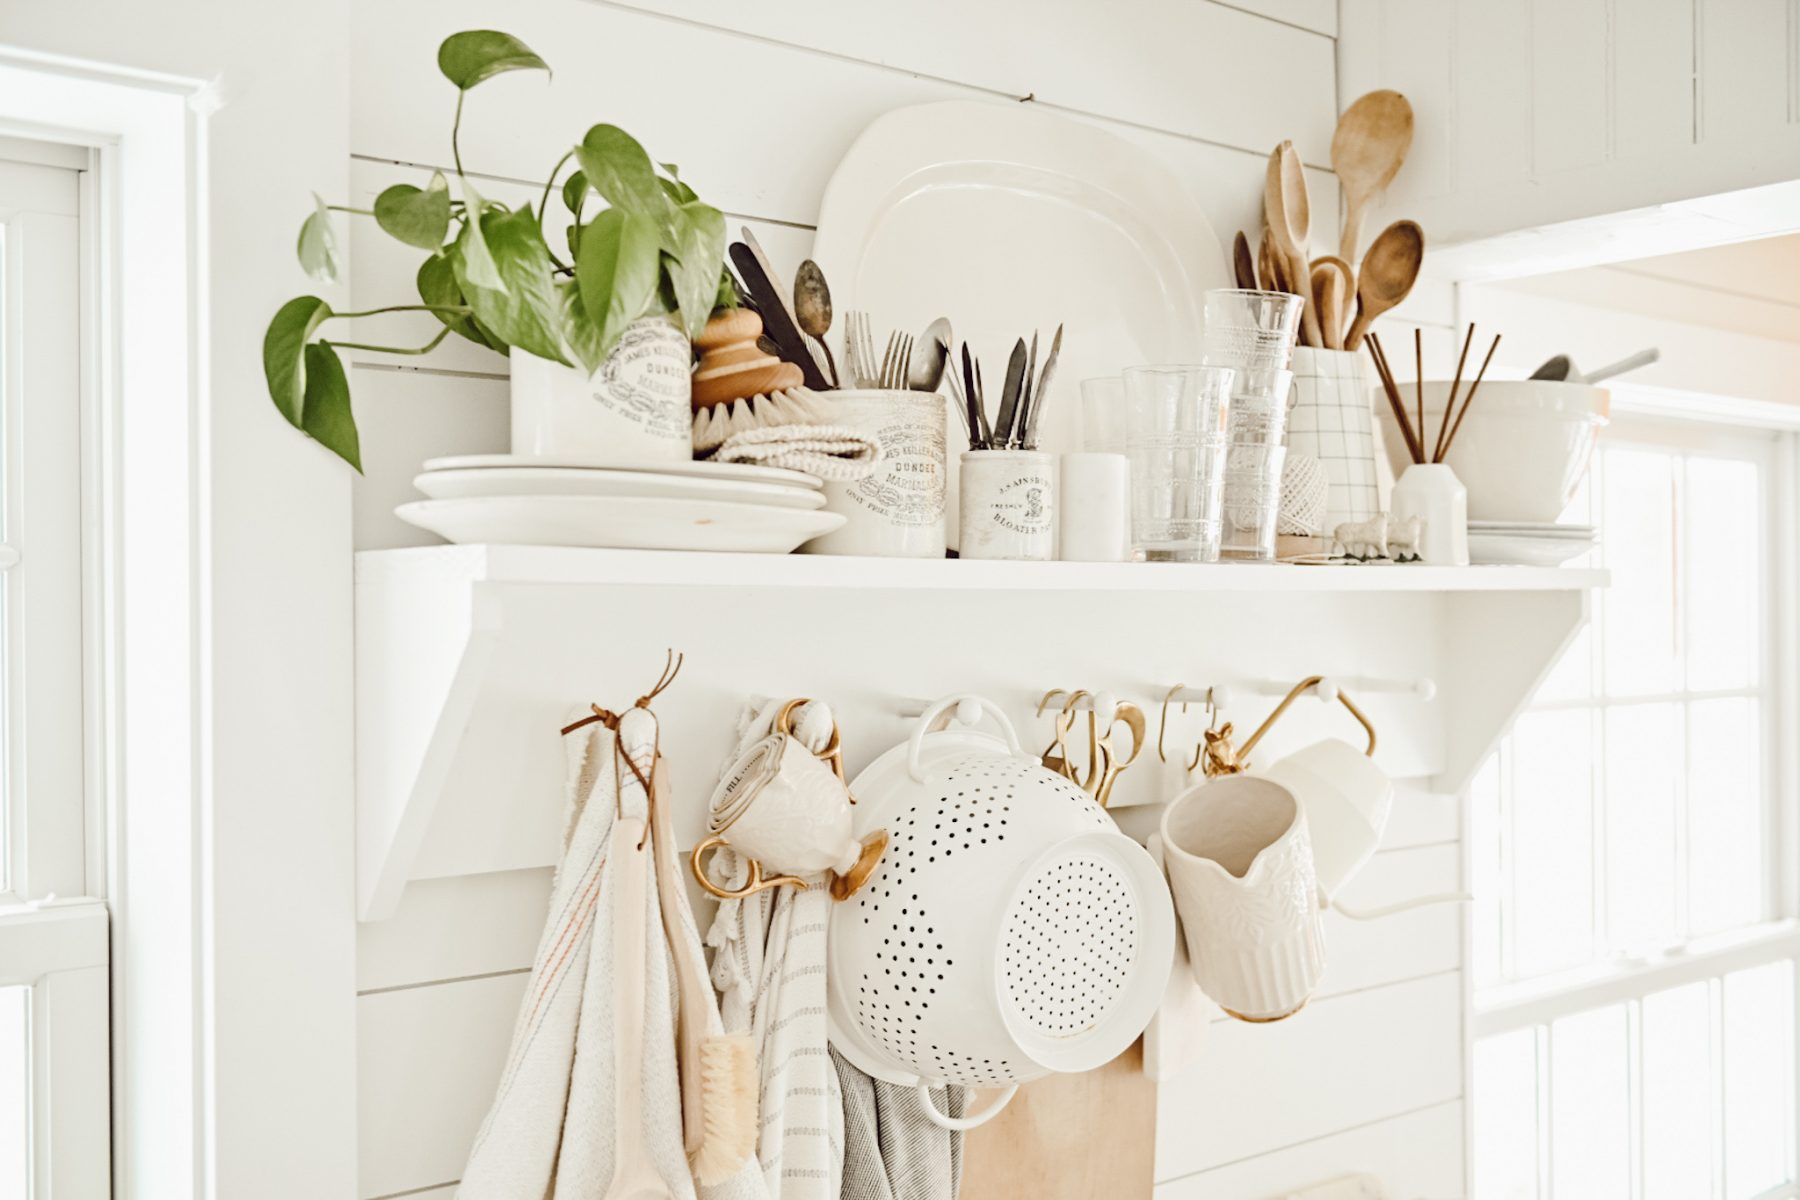 DIY Peg Rail Kitchen Storage